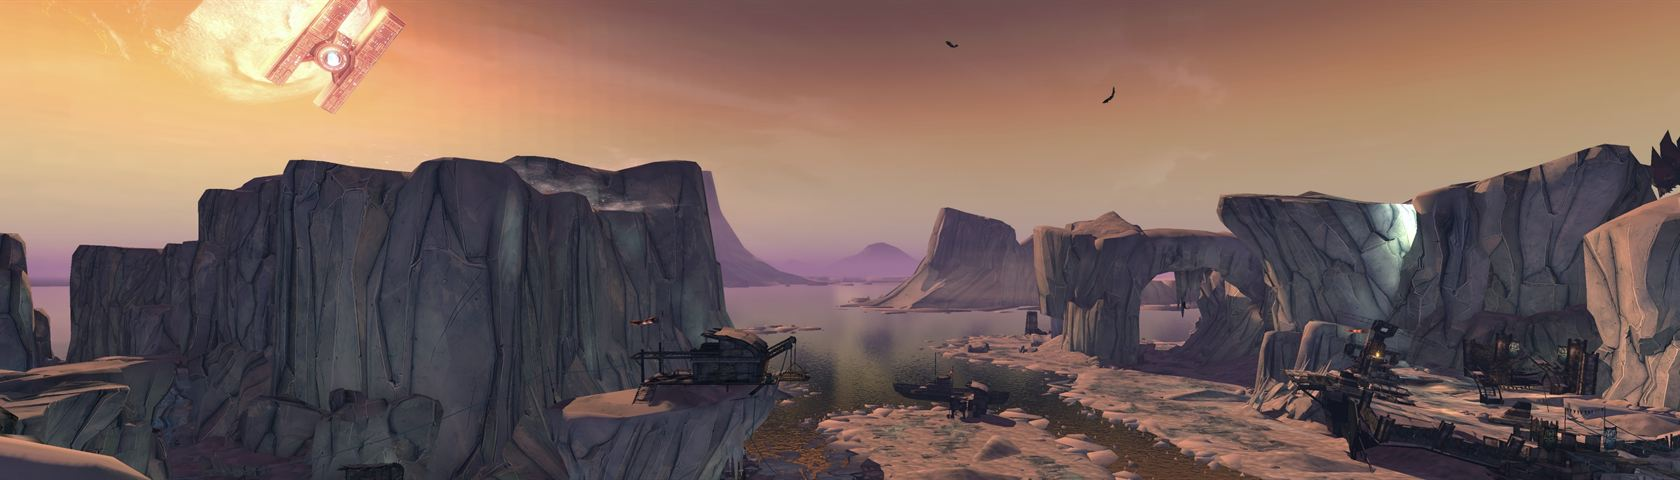 Borderlands 2 Sunset Images Wallpaperfusion By Binary Fortress